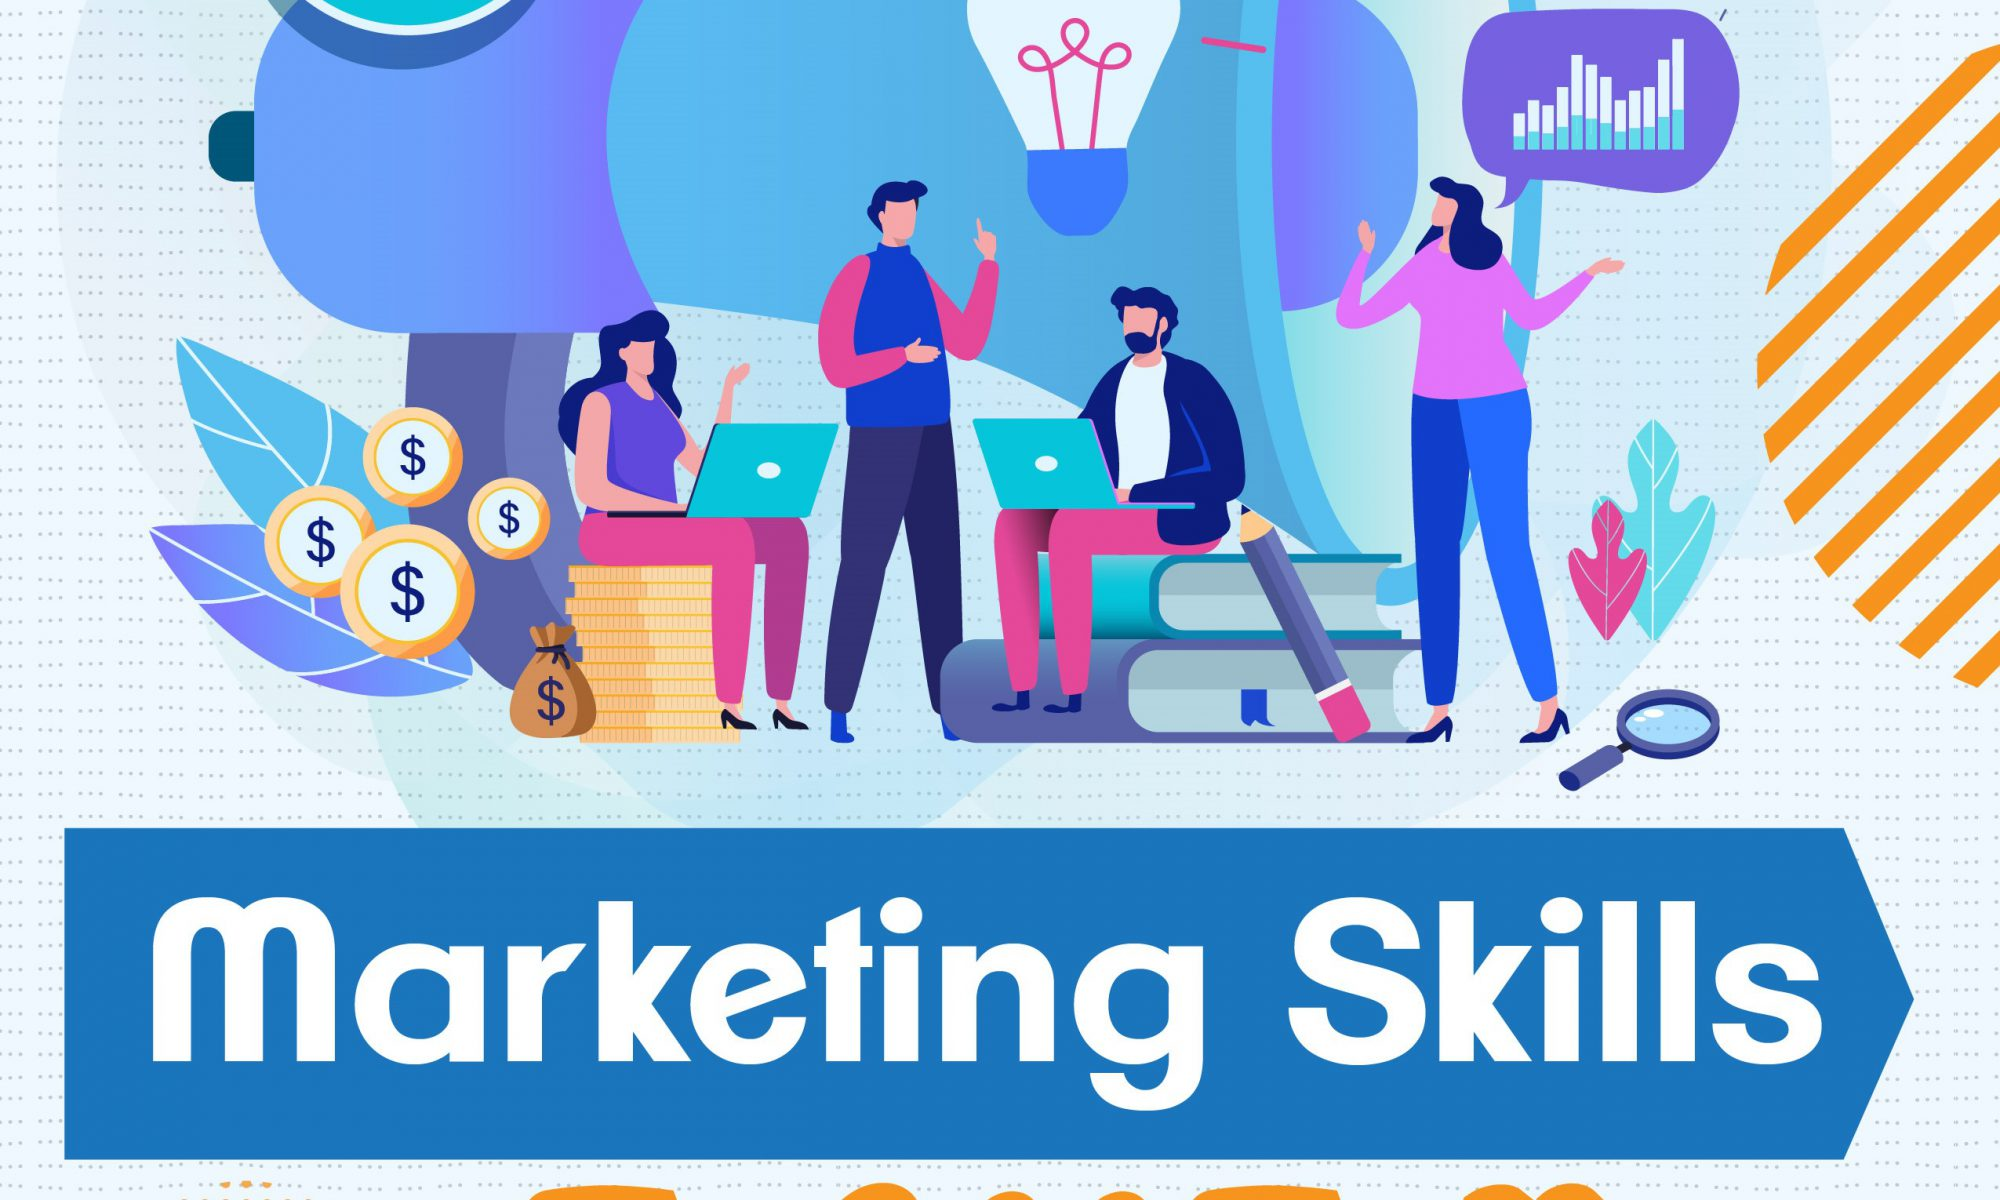 Marketing Skills To Add To Your Resume